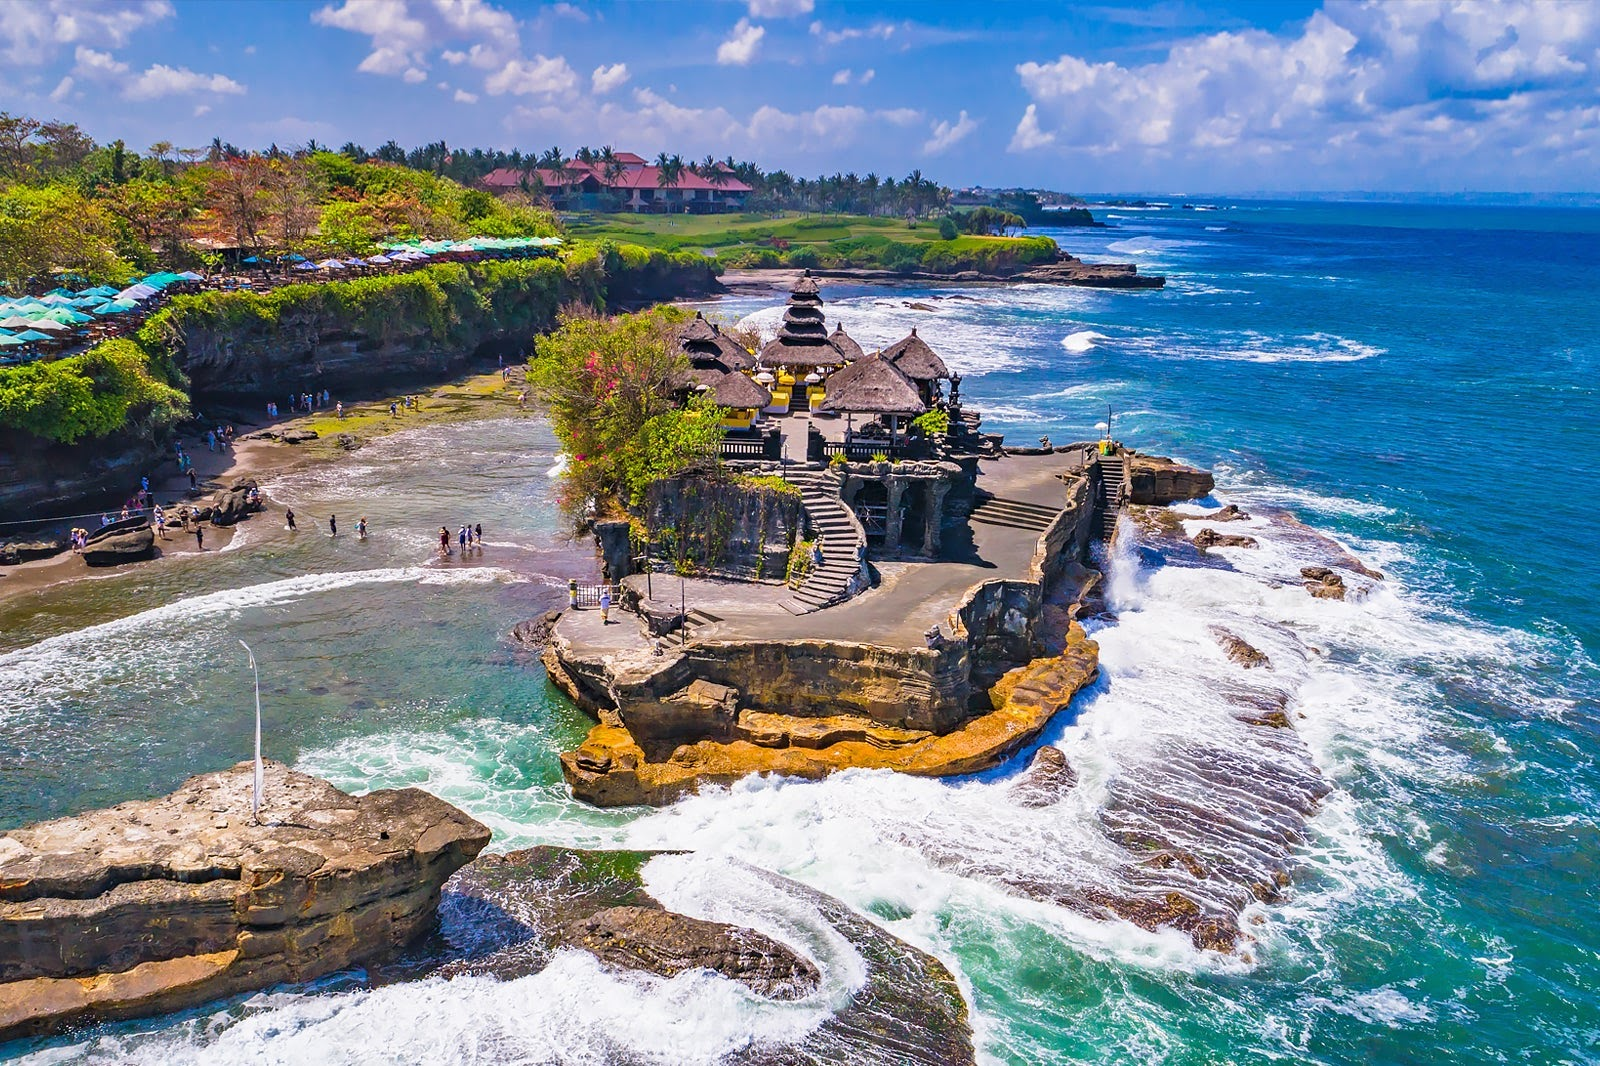 17 Best Things to Do in Bali - What is Bali Most Famous For?